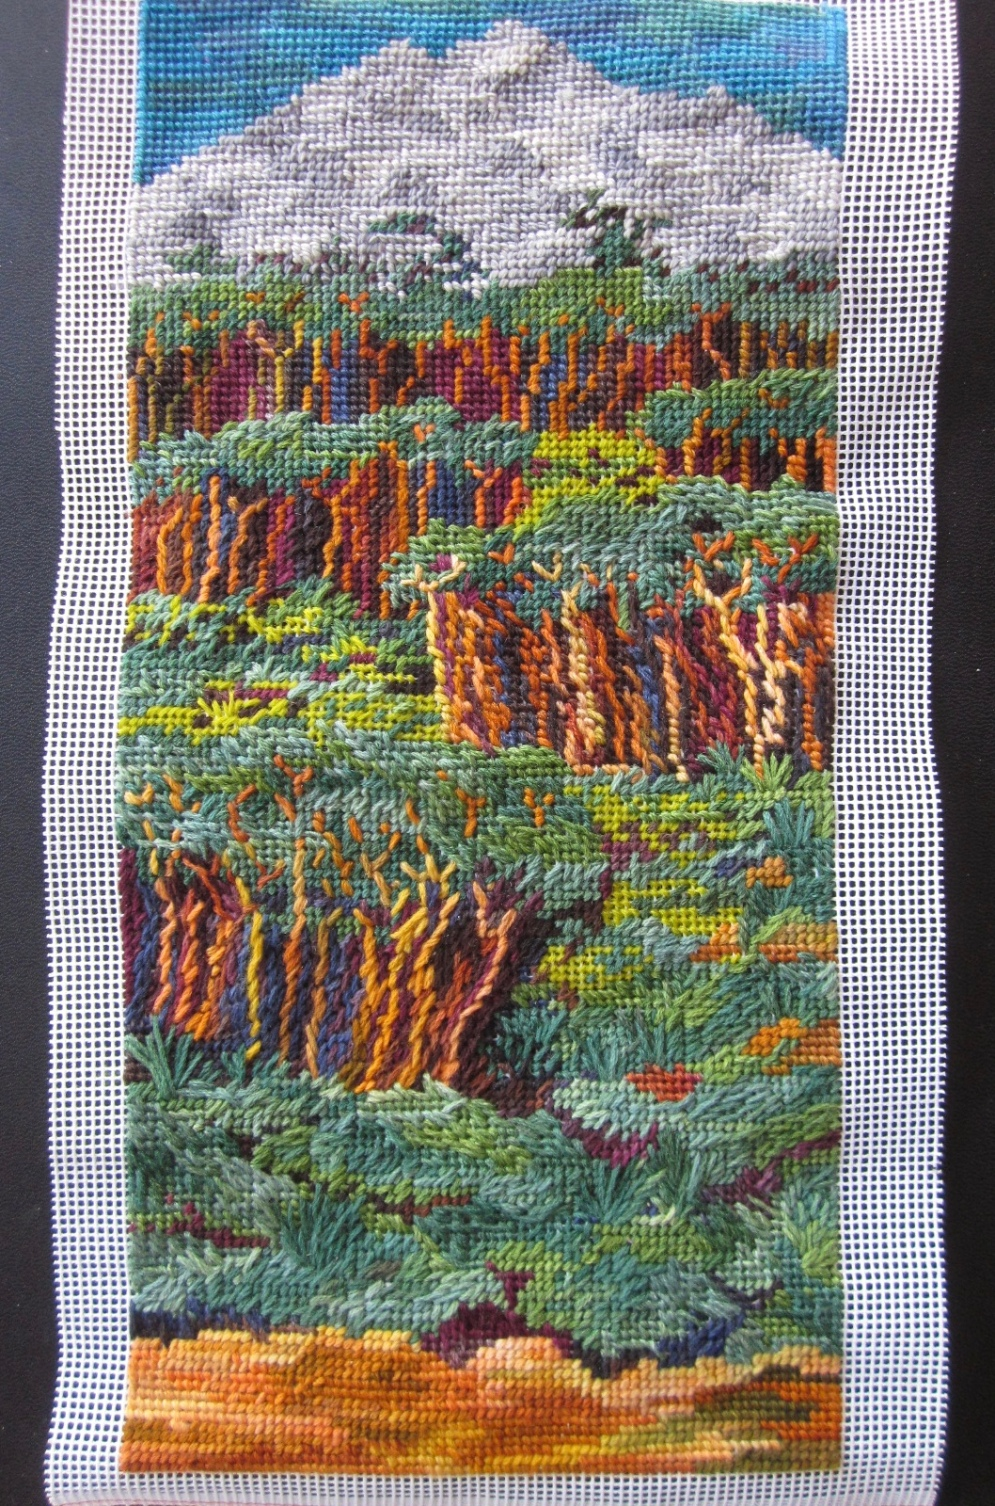 Finished tapestry (Art work and photo copyright: Anne Lawson, 2016)